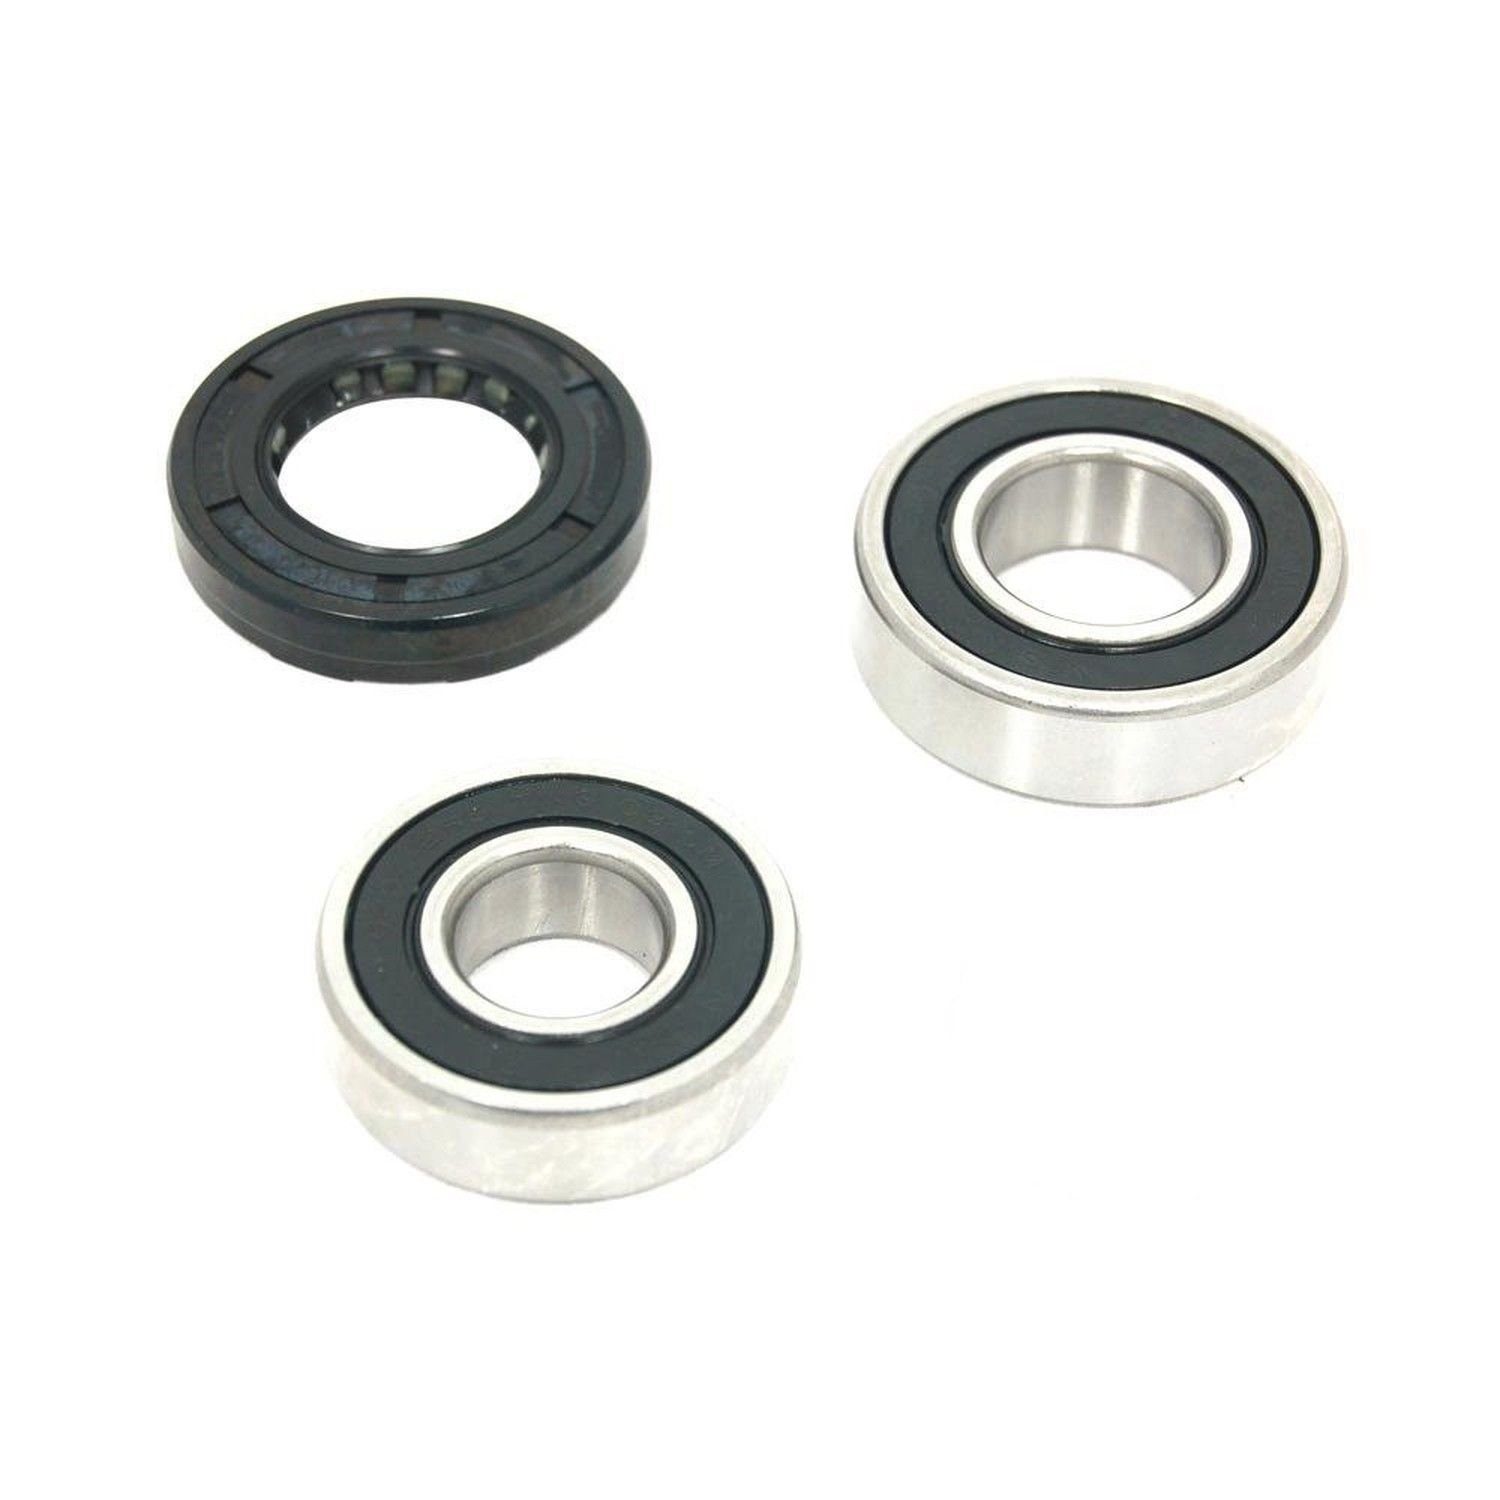 DC97-16151A Washing Machine Rear Tub Bearing Kit Compatible with Samsung